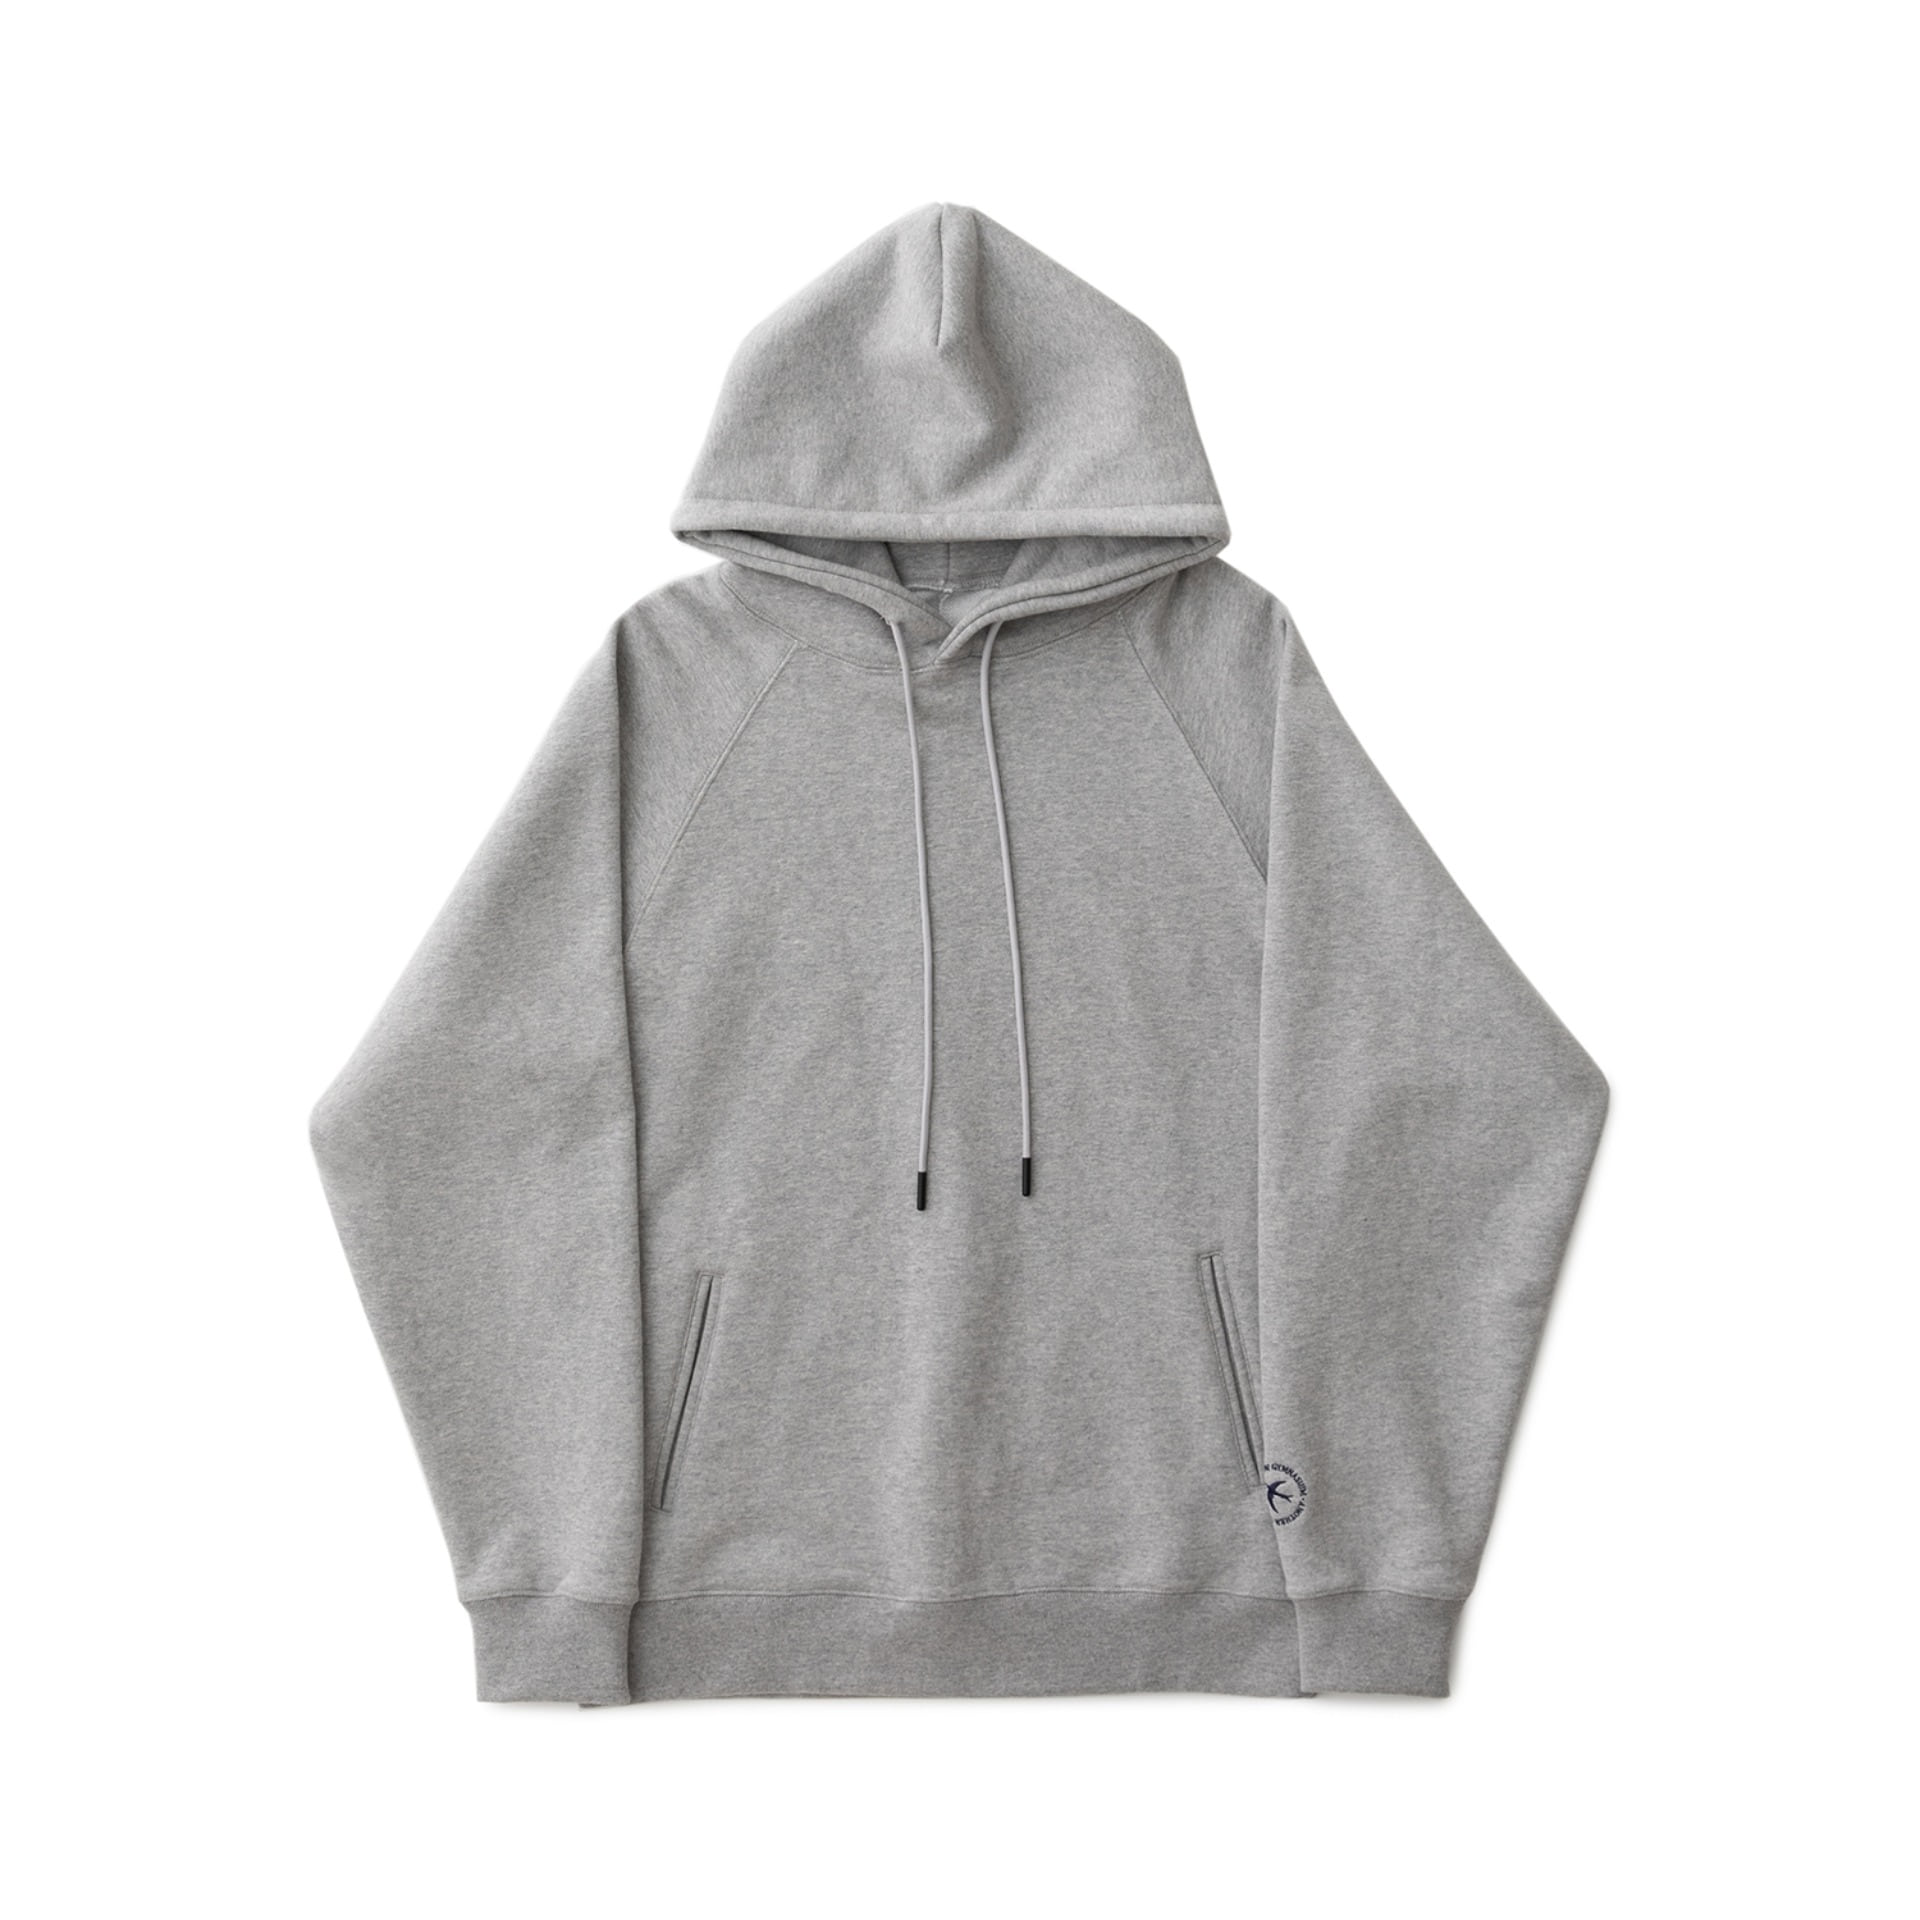 A/O 21SS Swallow Gymnasium Hoodie (Heather Gray)